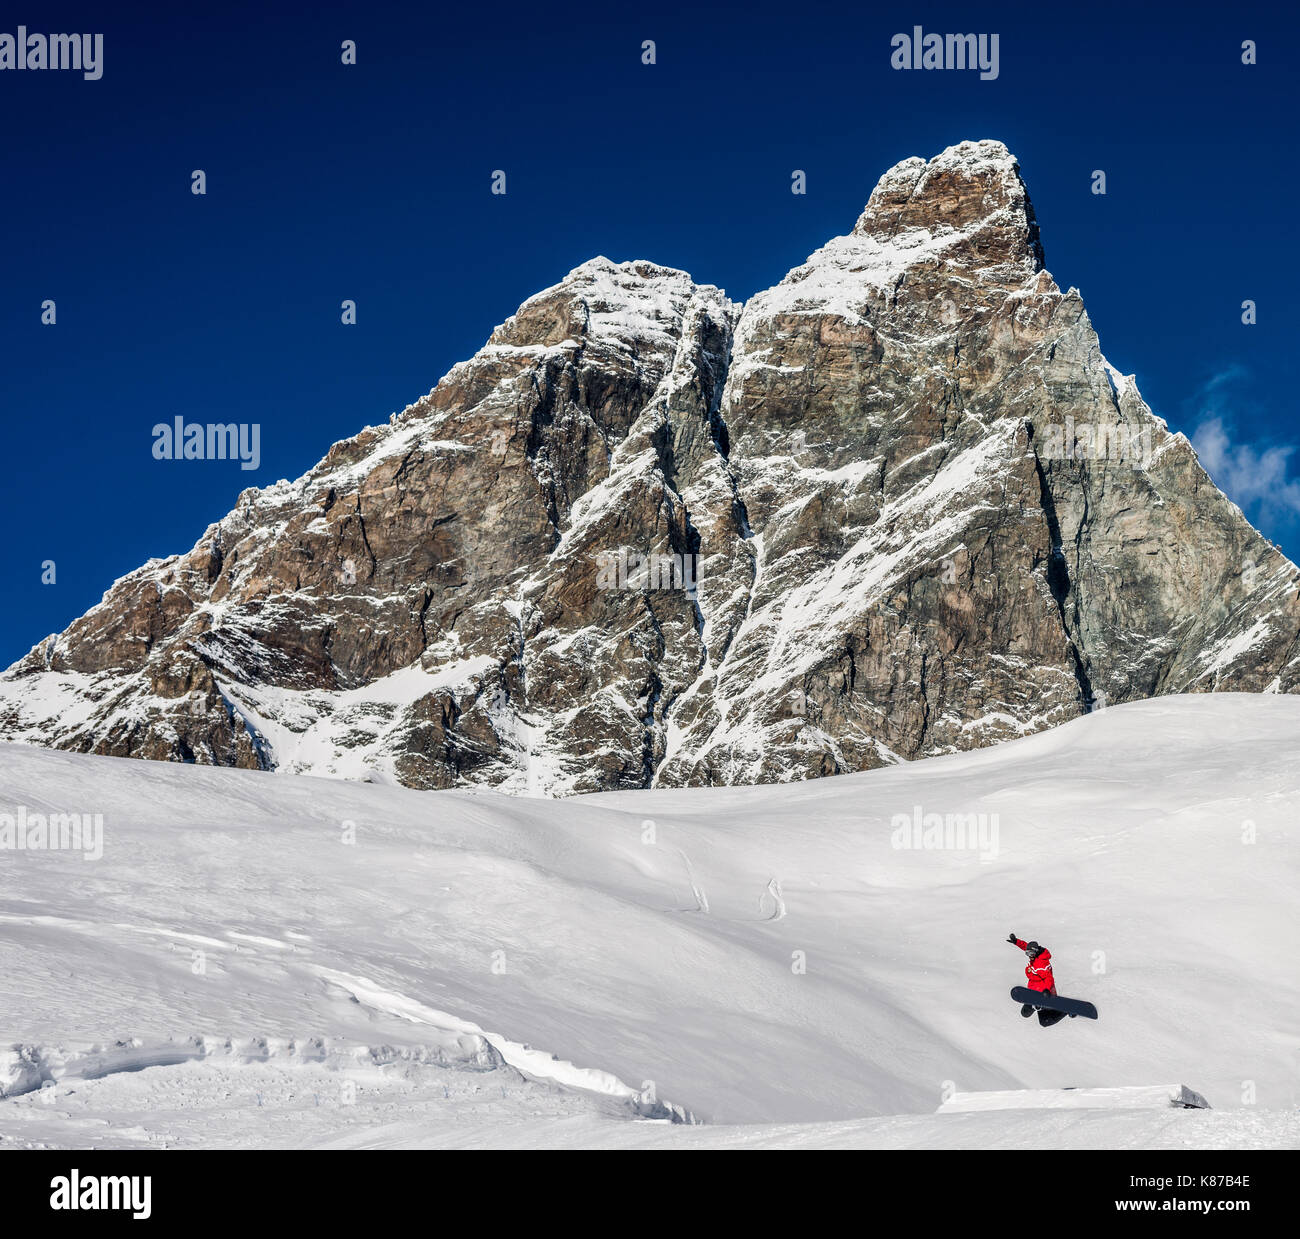 a-snowboarder-performs-a-trick-in-a-ski-piste-overlooking-the-famous-K87B4E.jpg